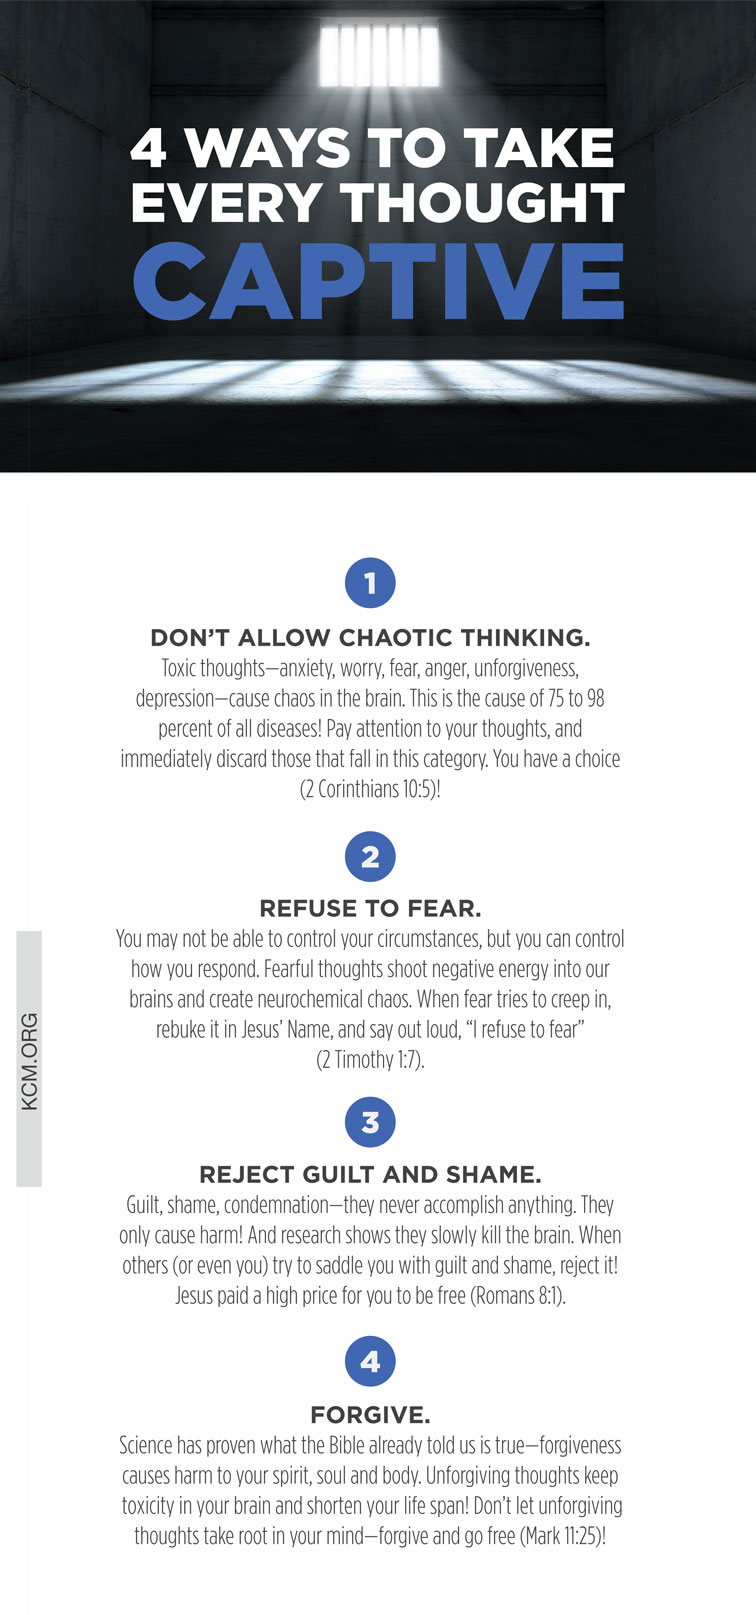 4 Ways to Take Every Thought Captive